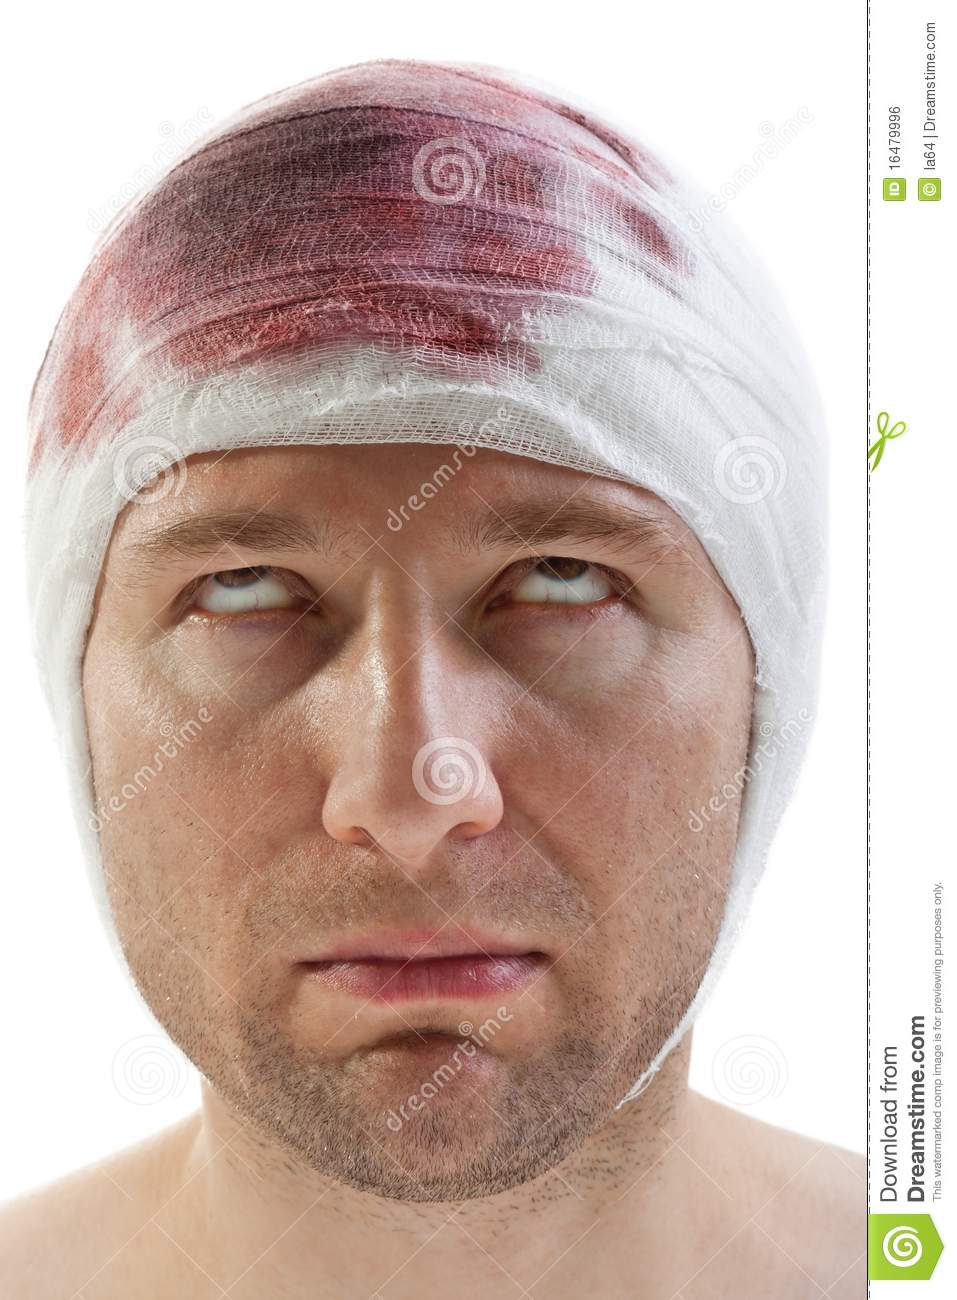 Bandage On Blood Wound Head Royalty Free Stock Image ...